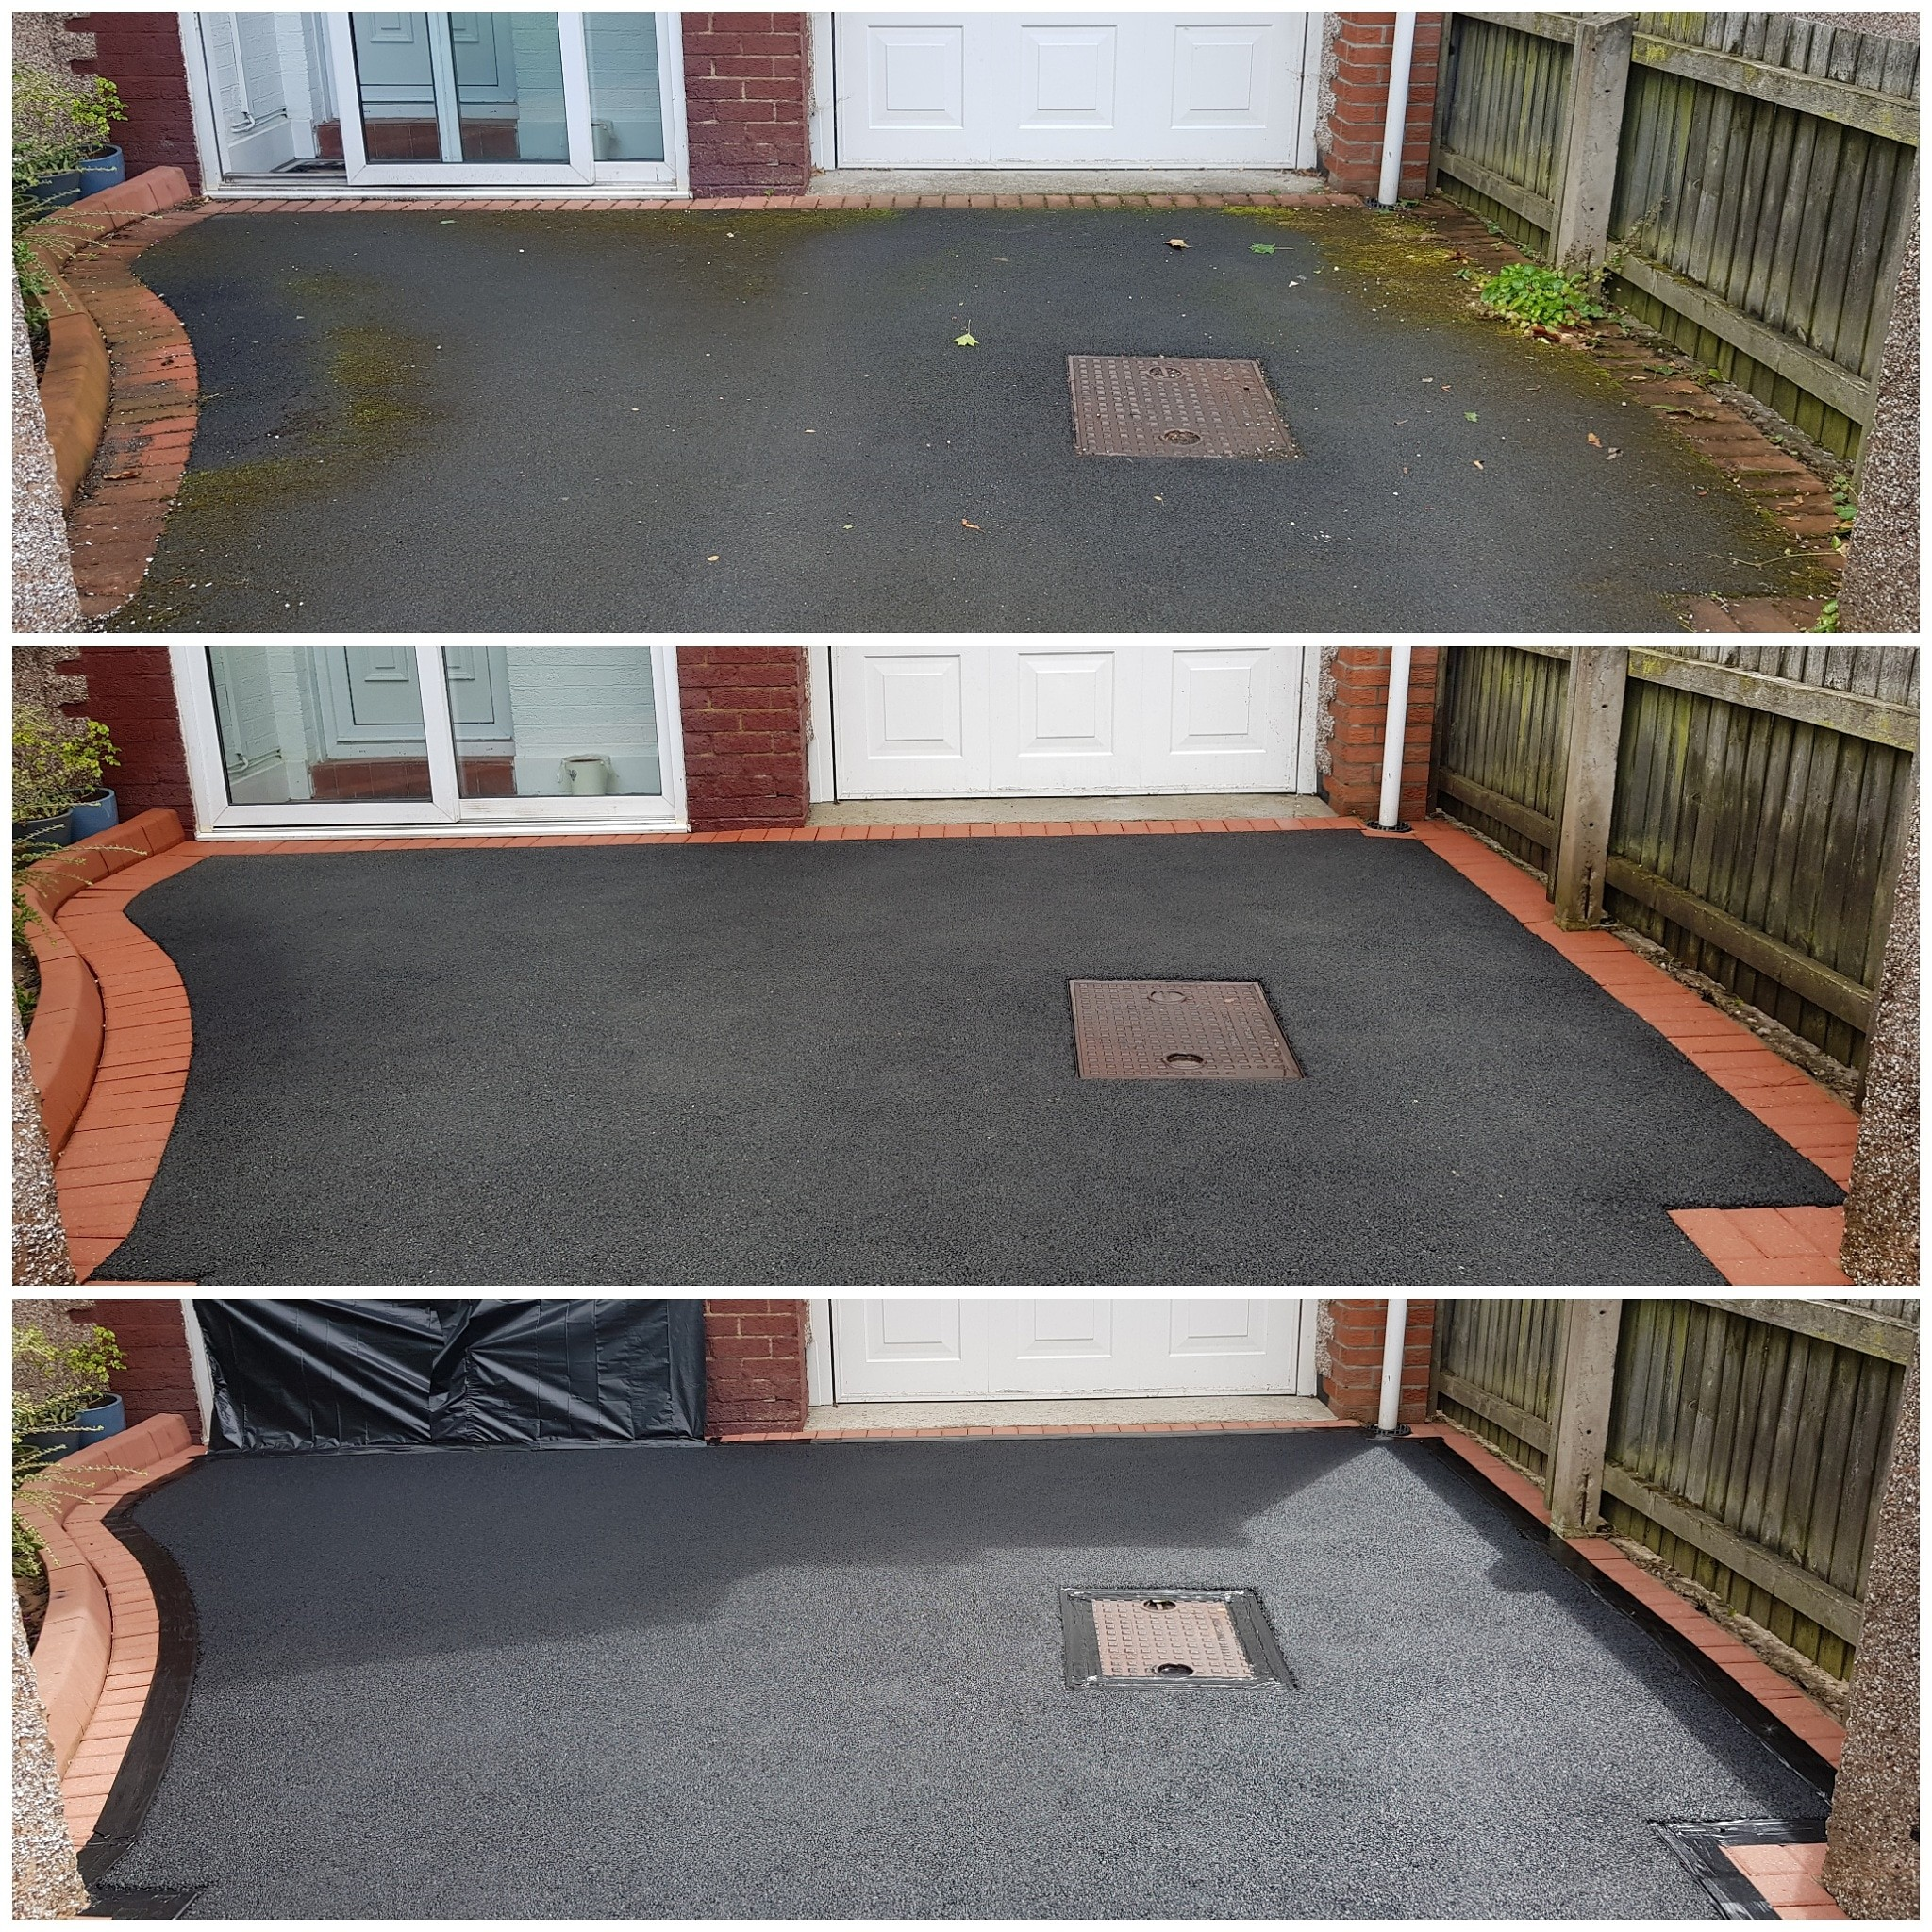 img_20180731_162347_5168015812535542415683 Oil Patch Removal, Tarmac Cleaning & Restoration, Resiblock Resimac - Meols, Wirral